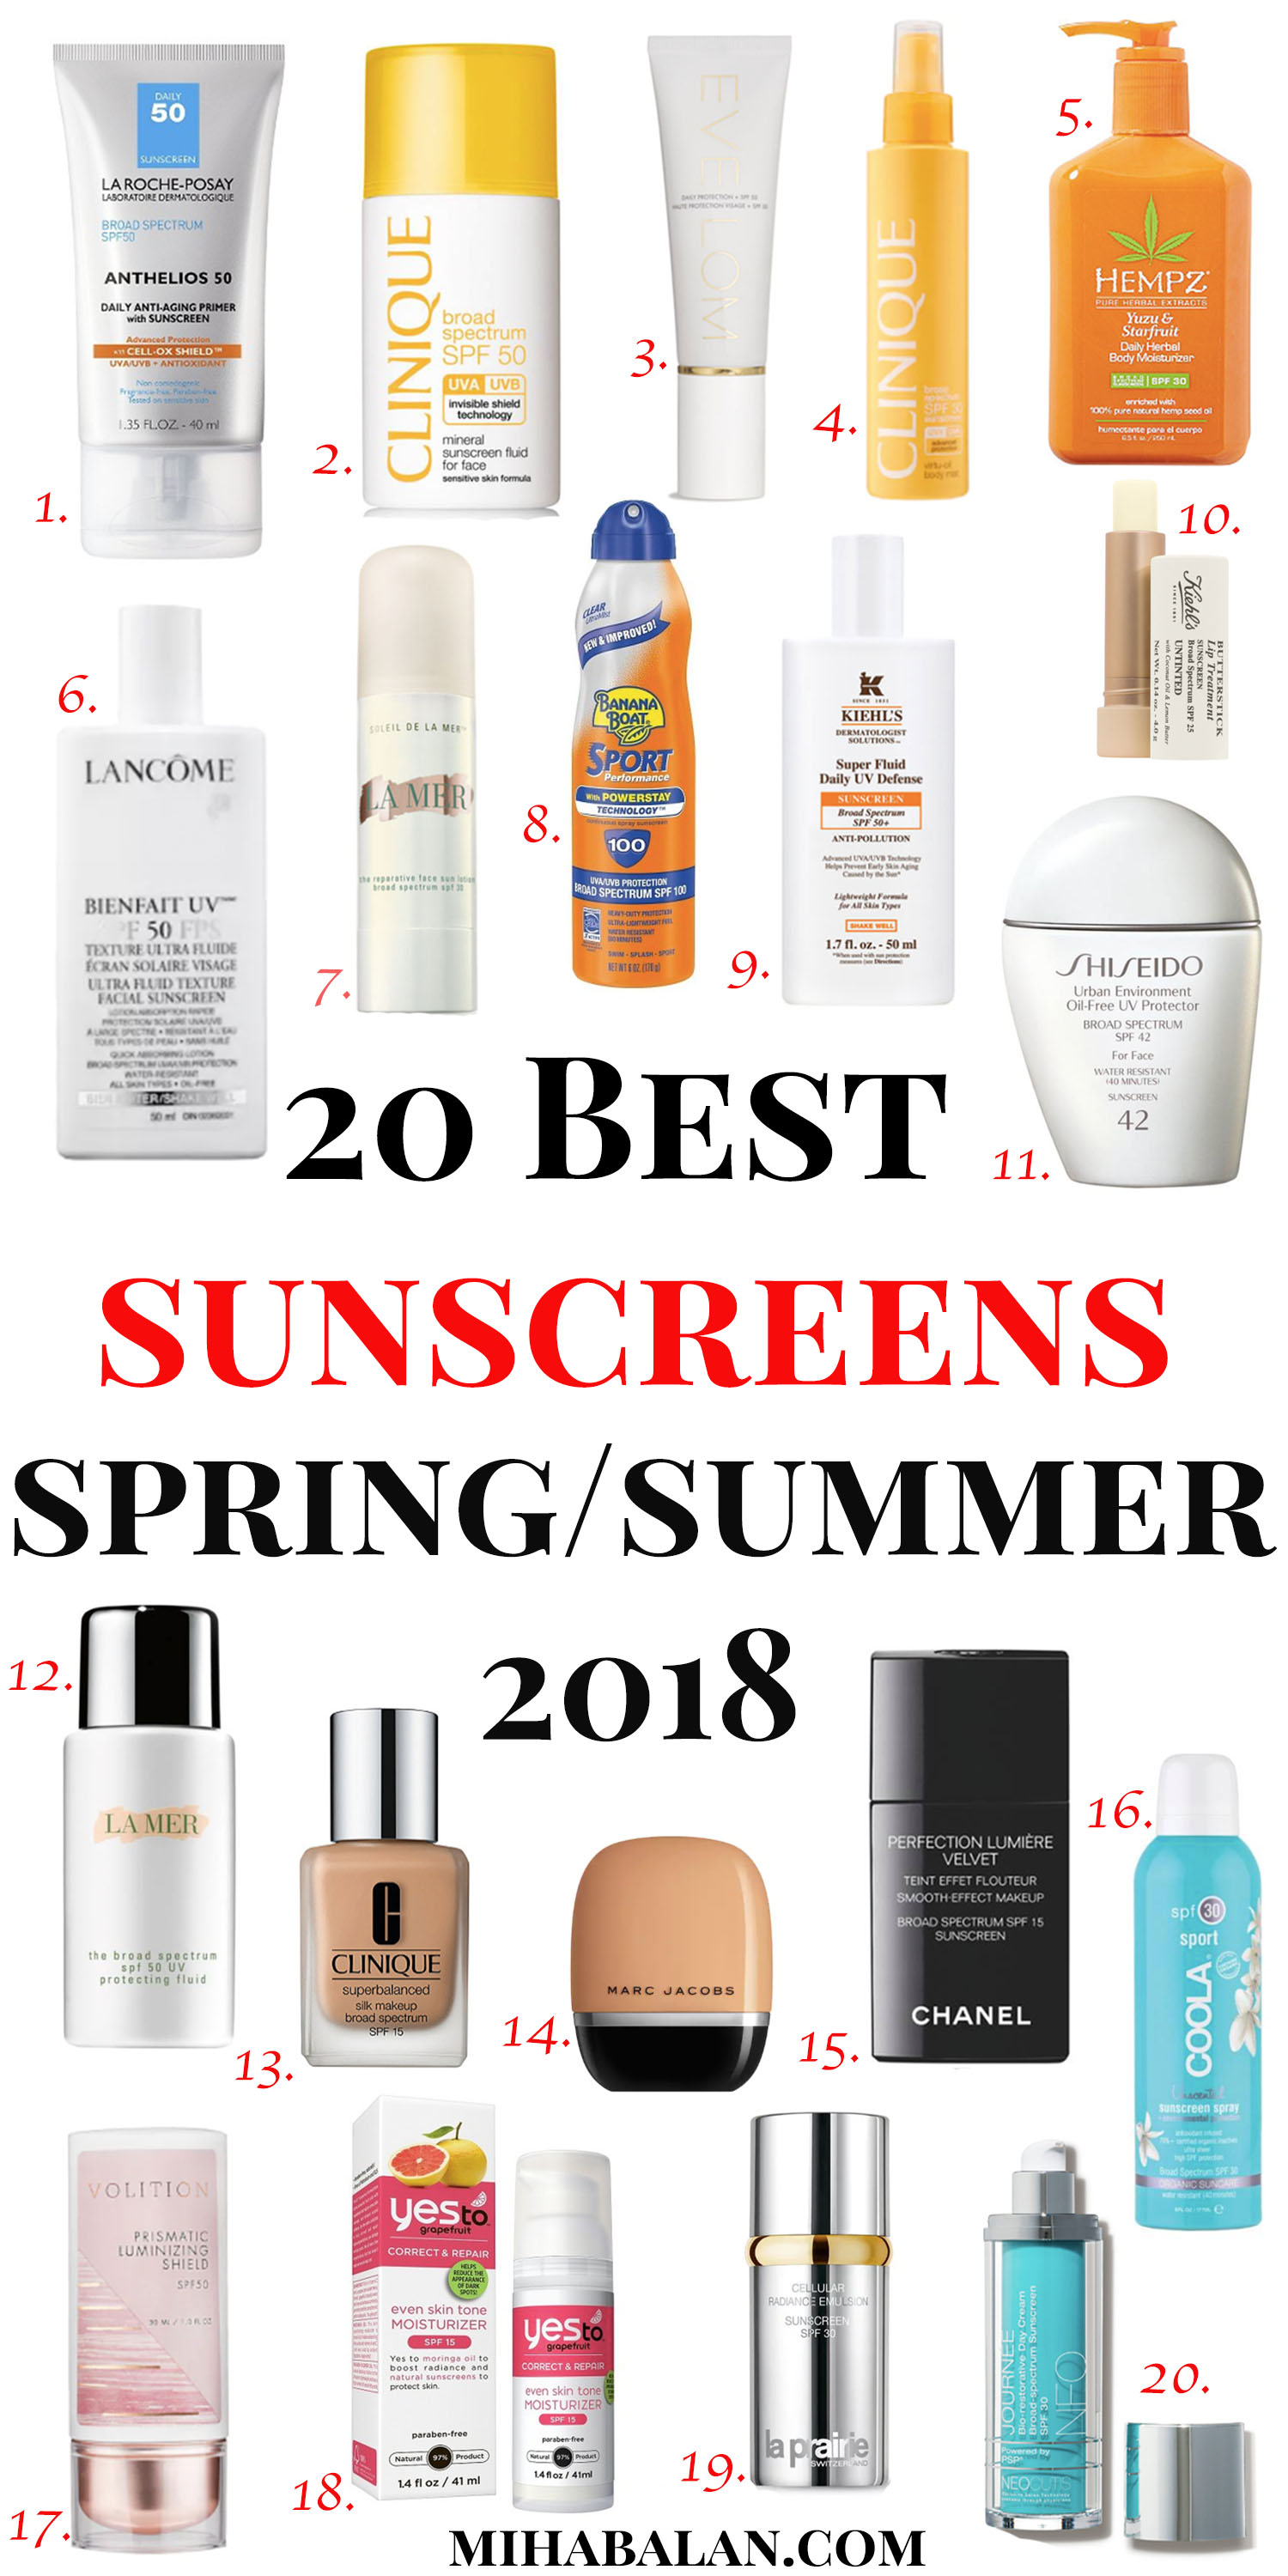 20 best sunscreens for this spring summer 2018, sun protection